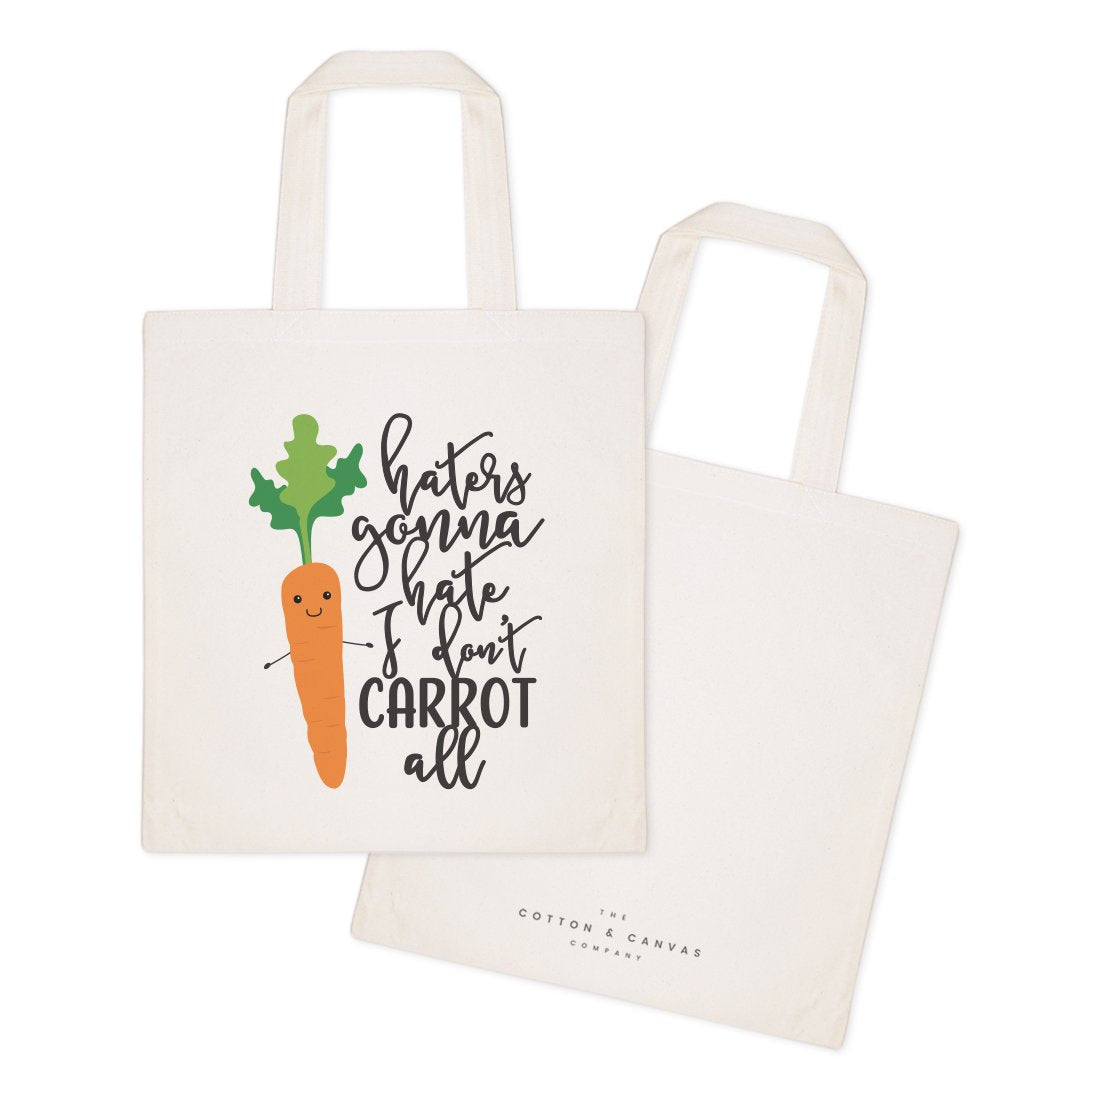 Haters Gonna Hate, I Don't Carrot All Cotton Canvas Tote Bag